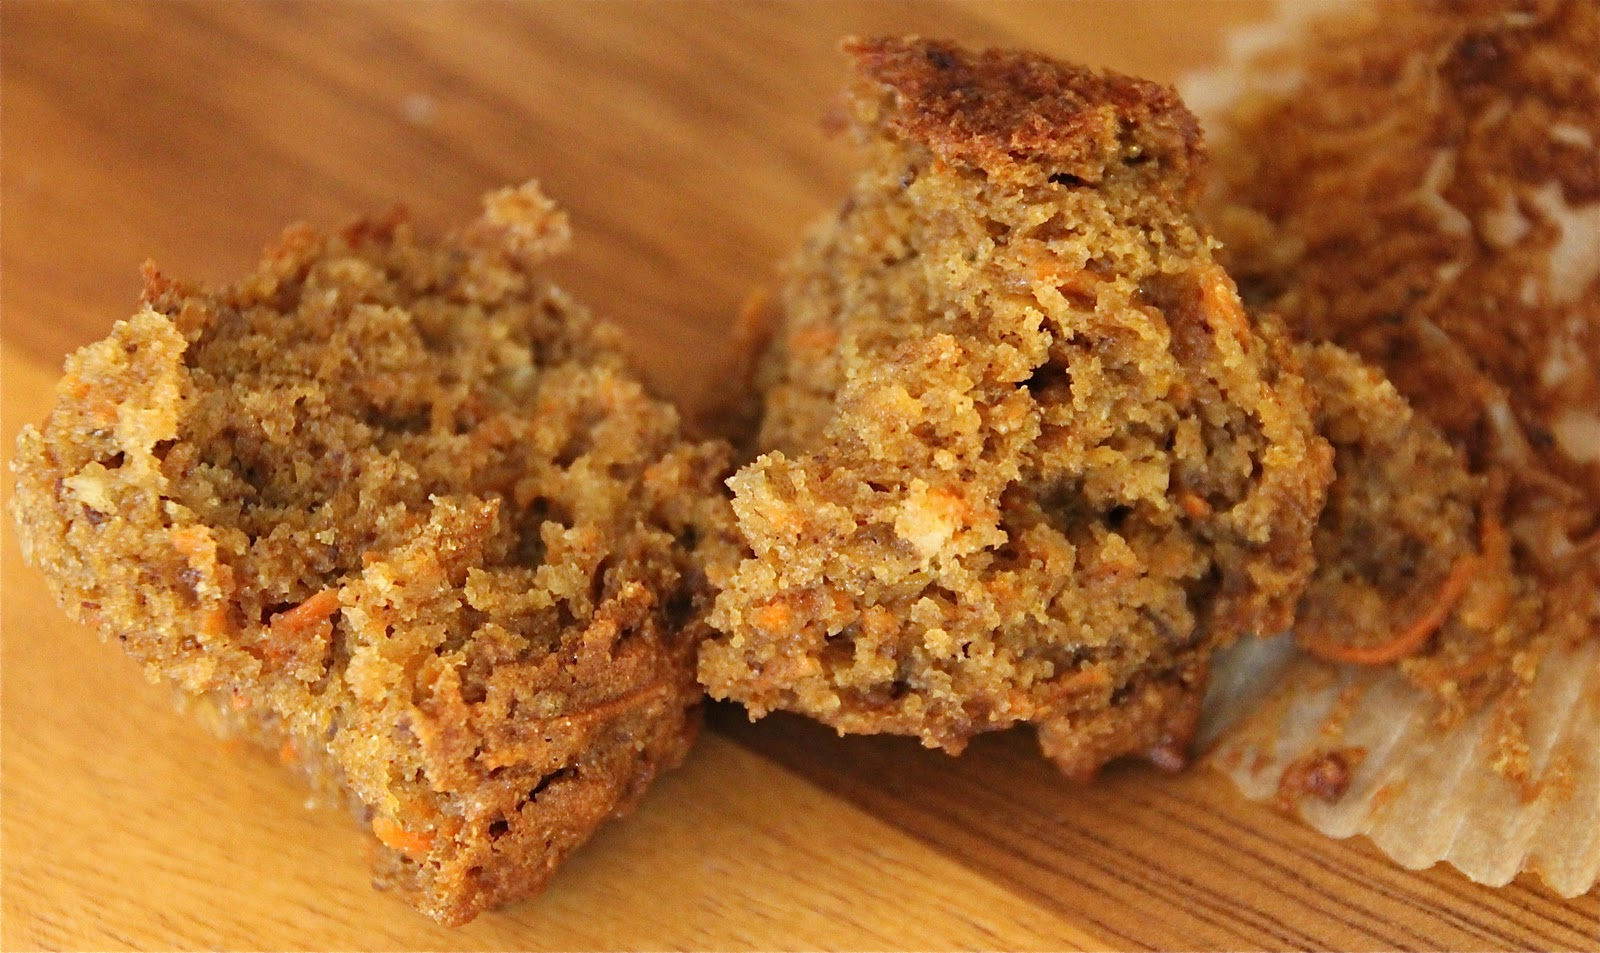 ... Egg-Free Carrot Coconut Pineapple Muffins - Jeanette's Healthy Living